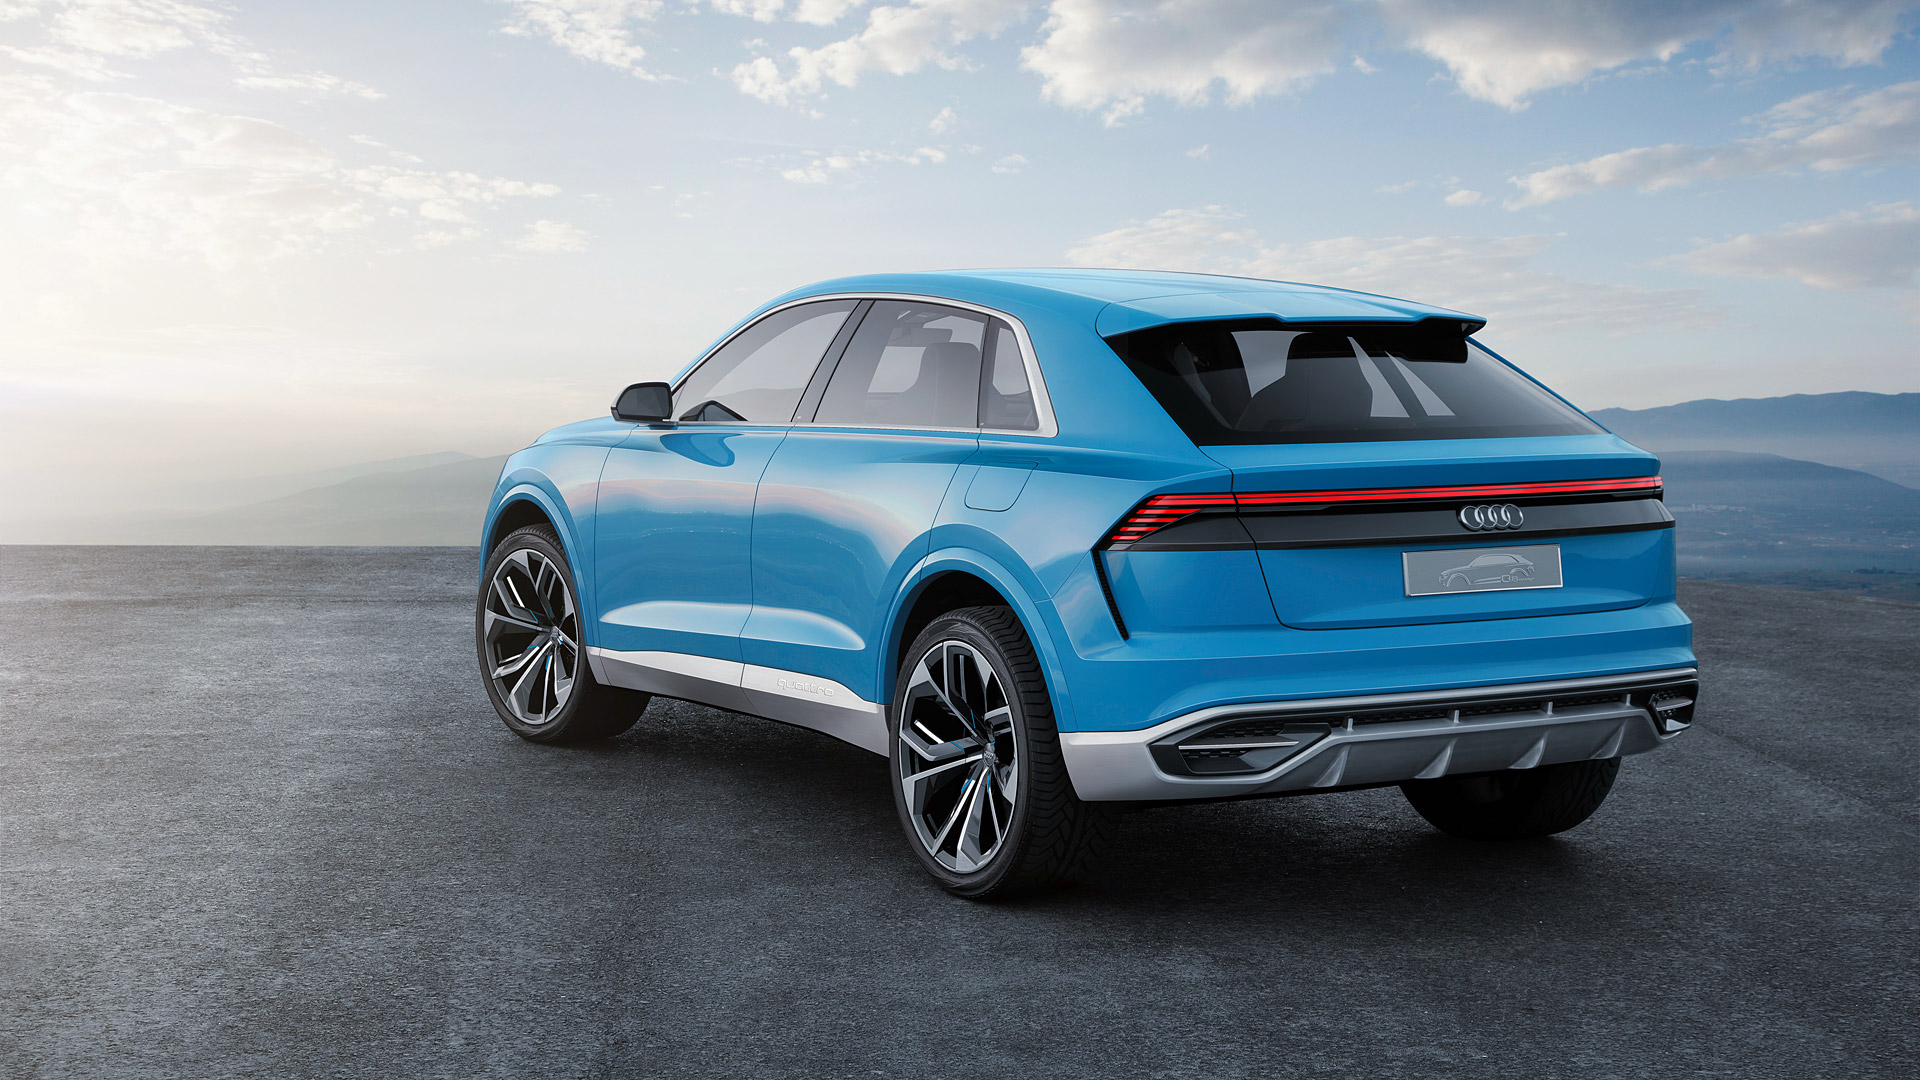 audi q8 rear view wallpaper 66023